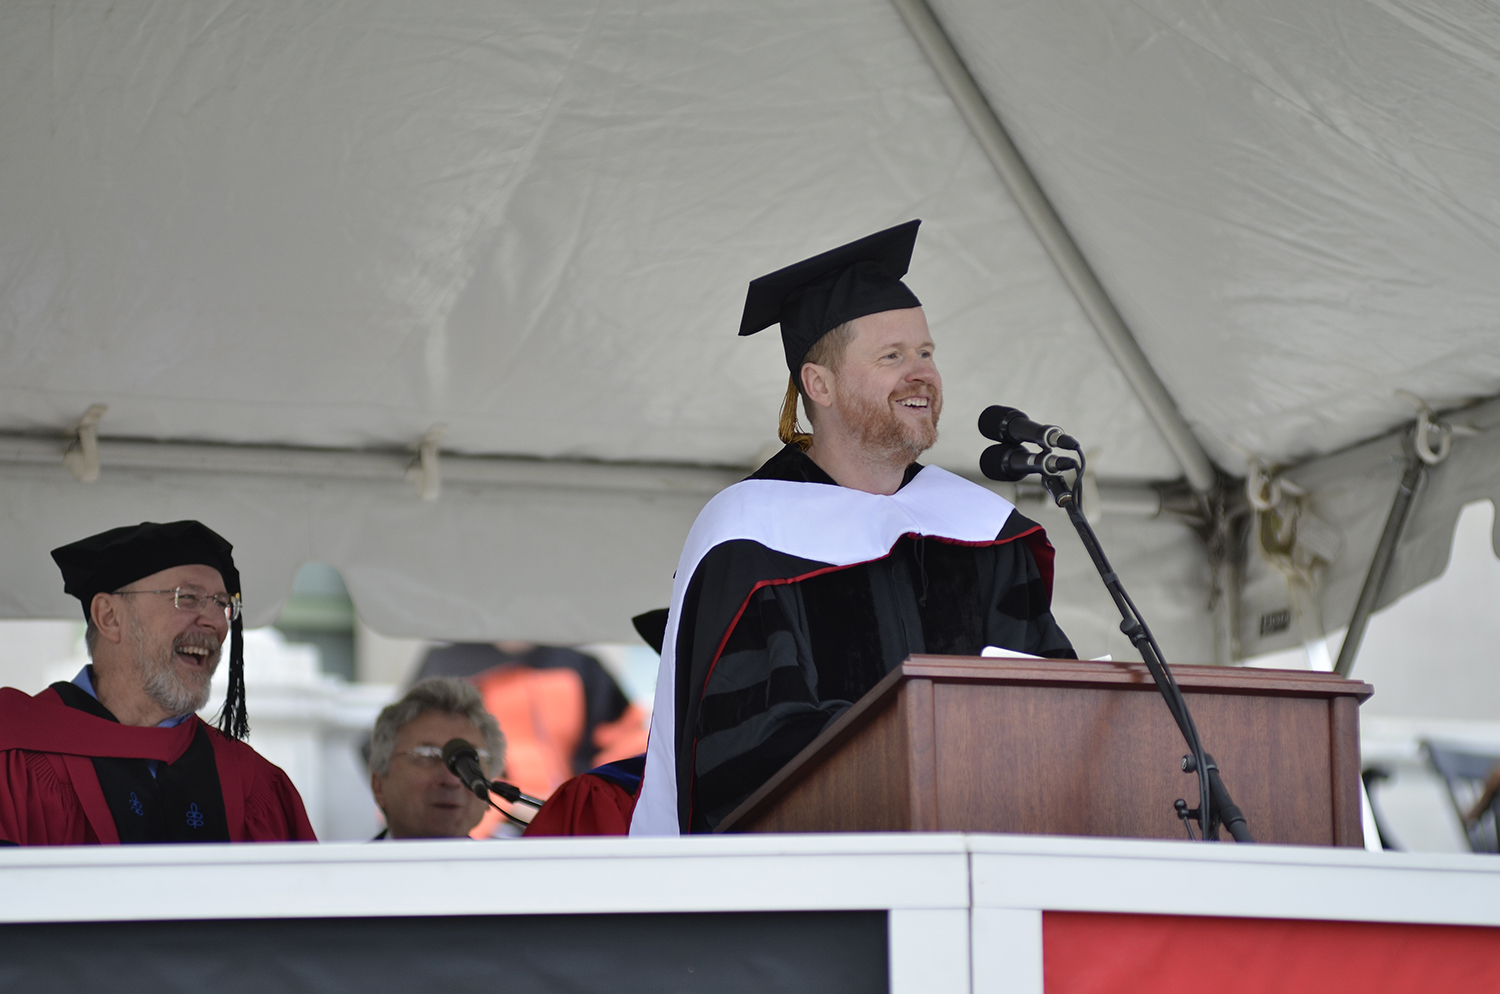 Joss Whedon '87 delivered Wesleyan's Commencement address in 2013.